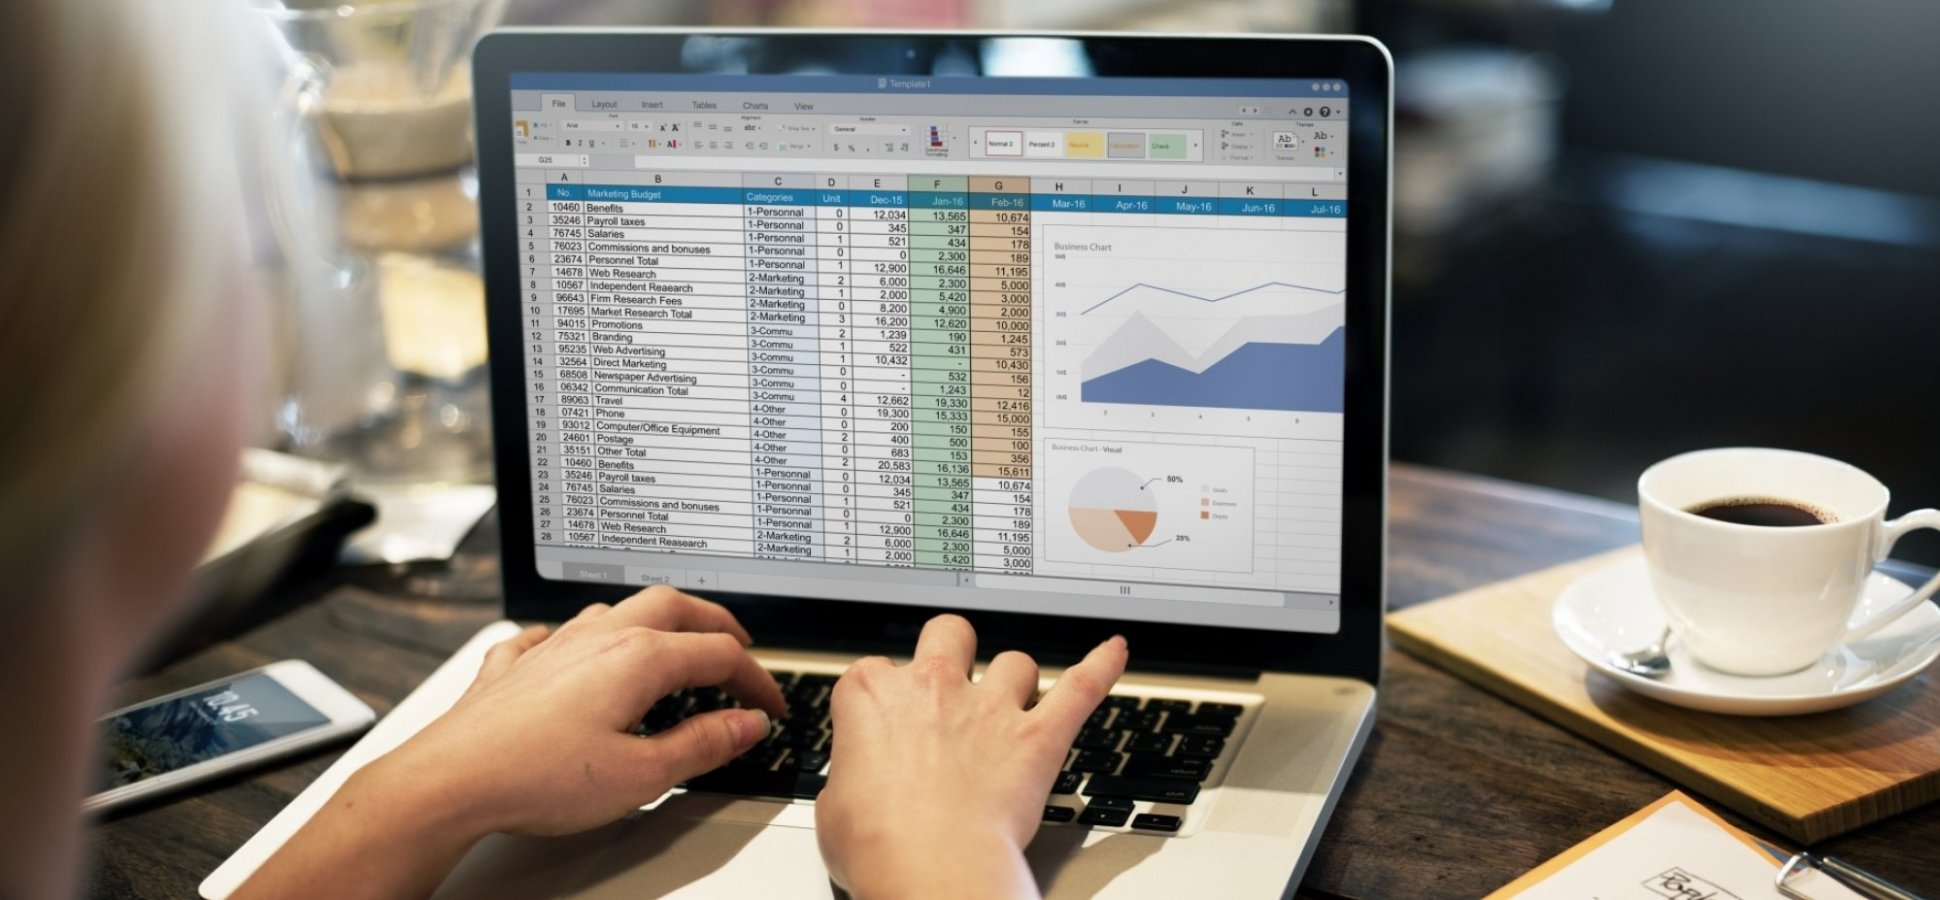 5 Easy Microsoft Excel Tips That Can Save You 10 Hours a Week